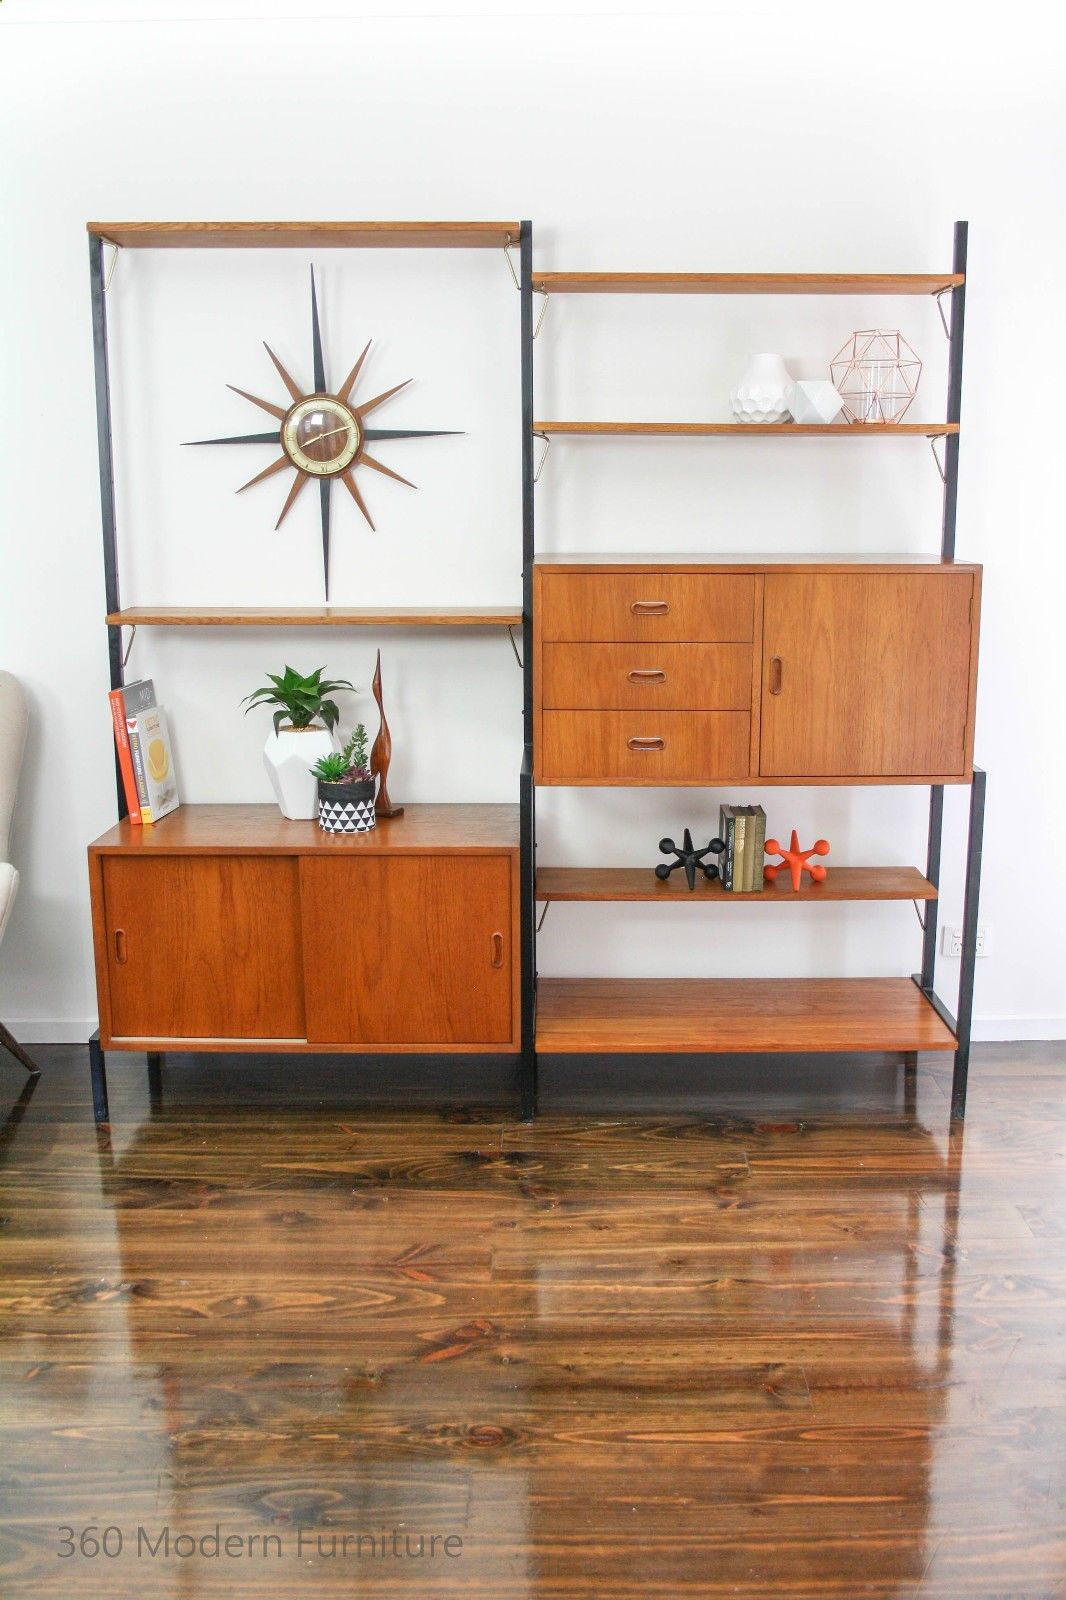 Clean and Care Garden Furniture Mid Century Wall Unit System